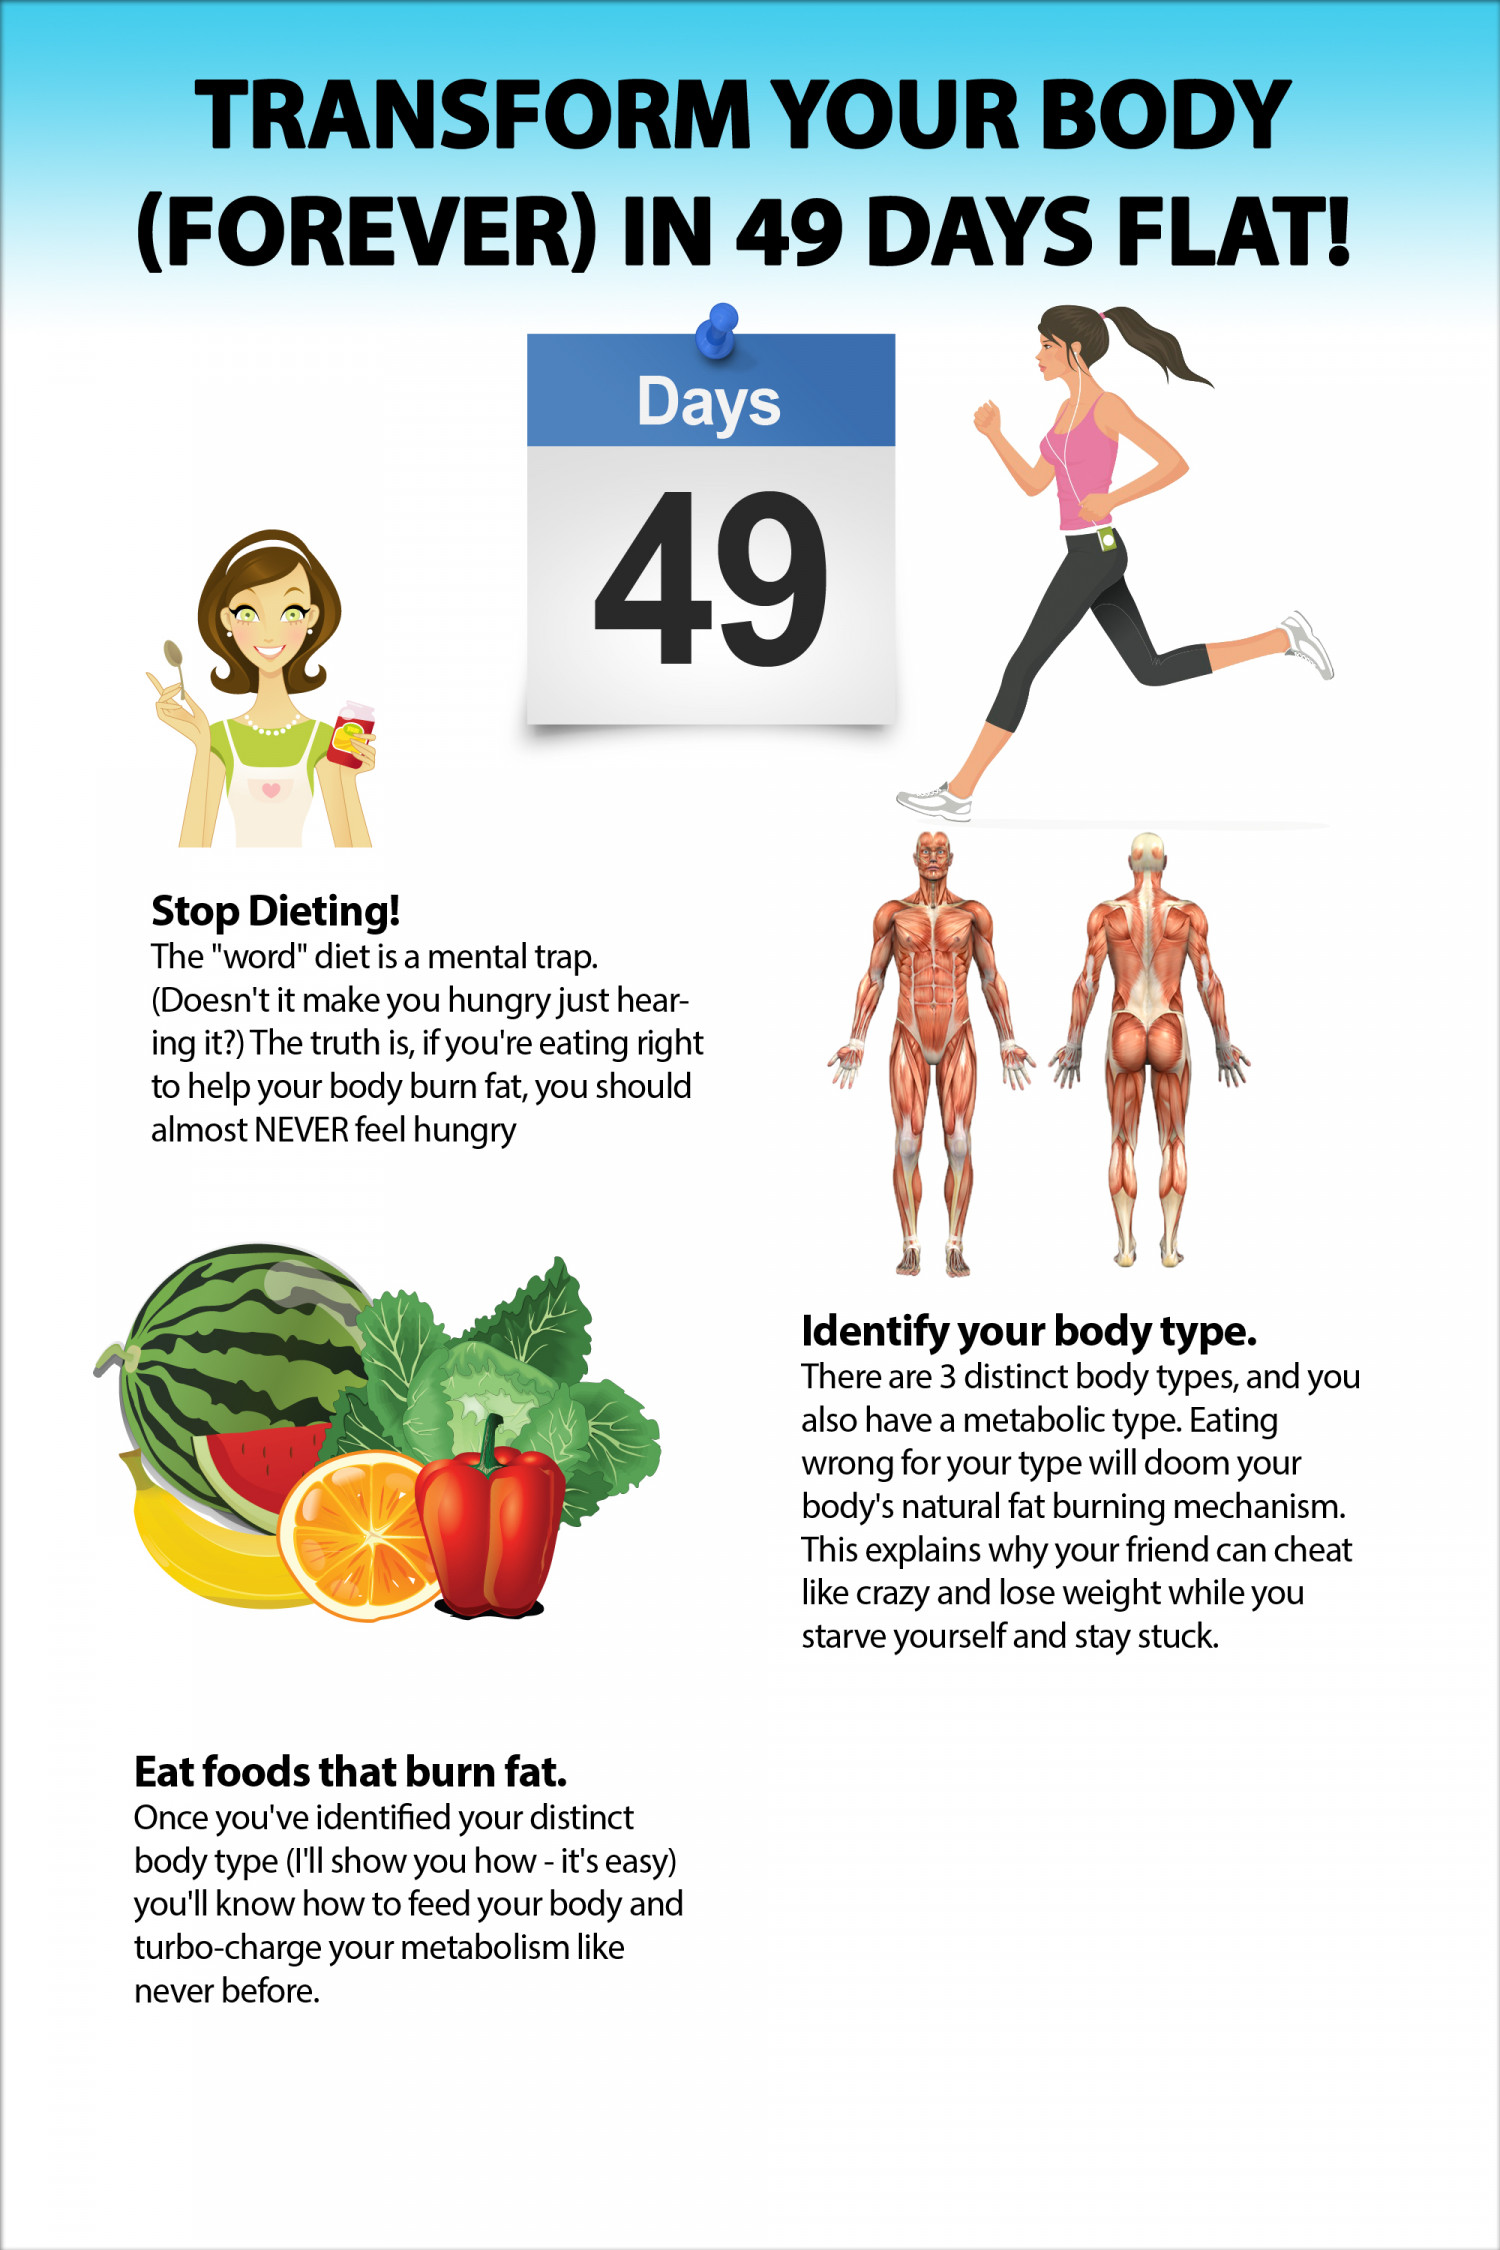 Transform Your Body Flat (Forever) in 49 Days  Infographic